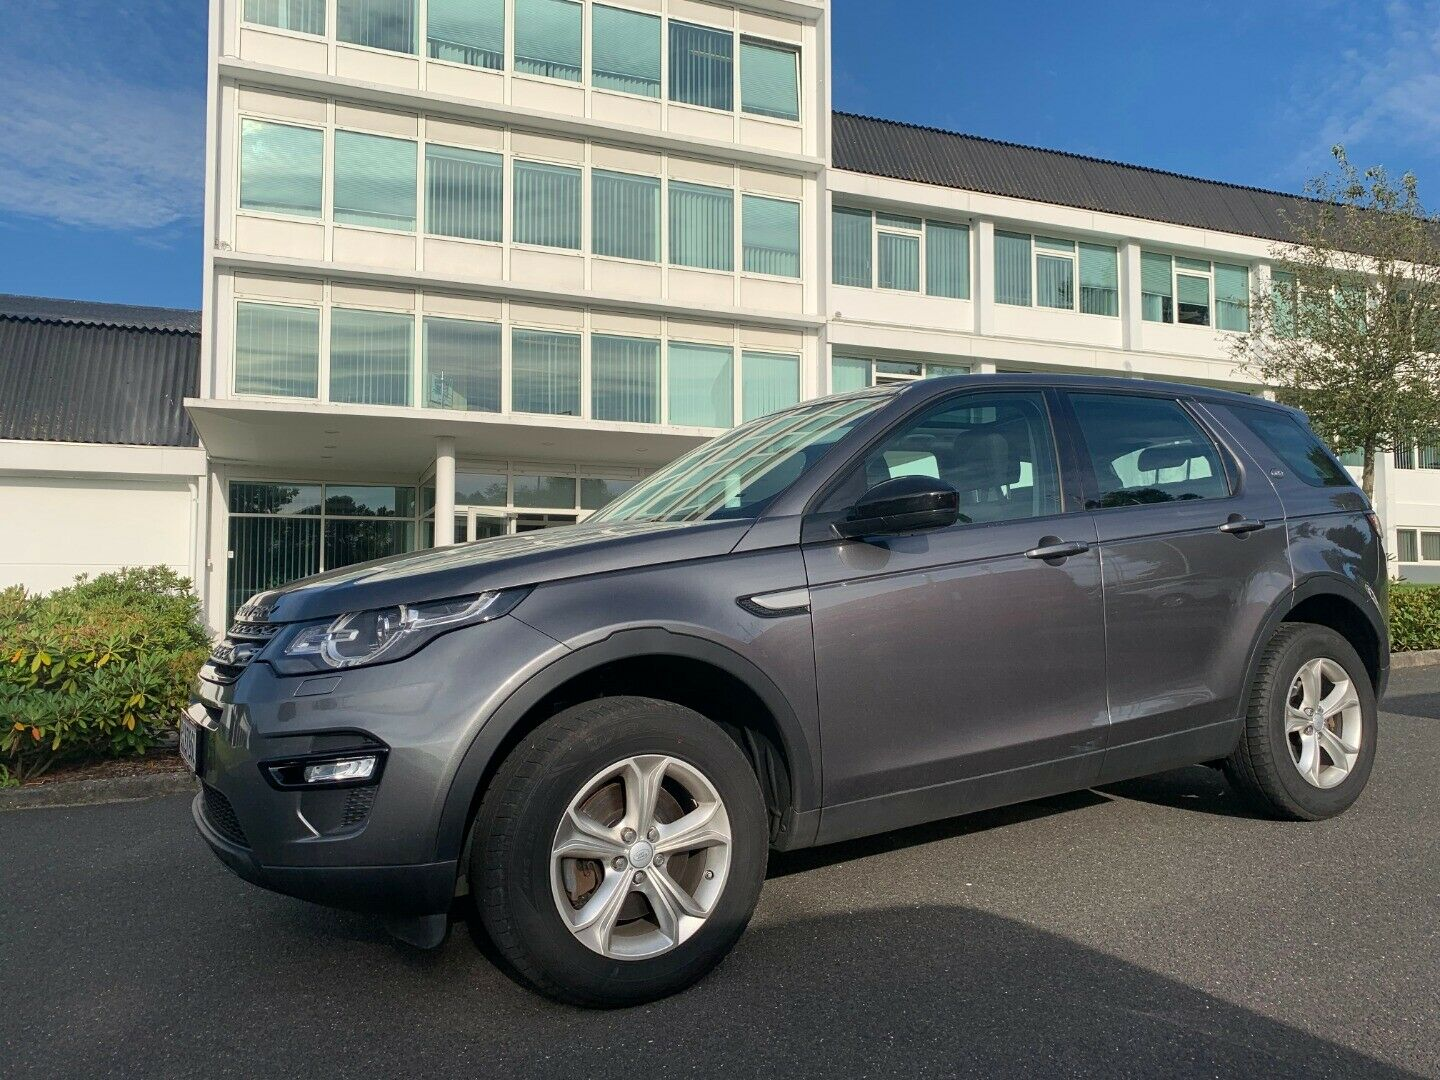 Land Rover Discovery Sport 2,0 TD4 180 S aut. 5d